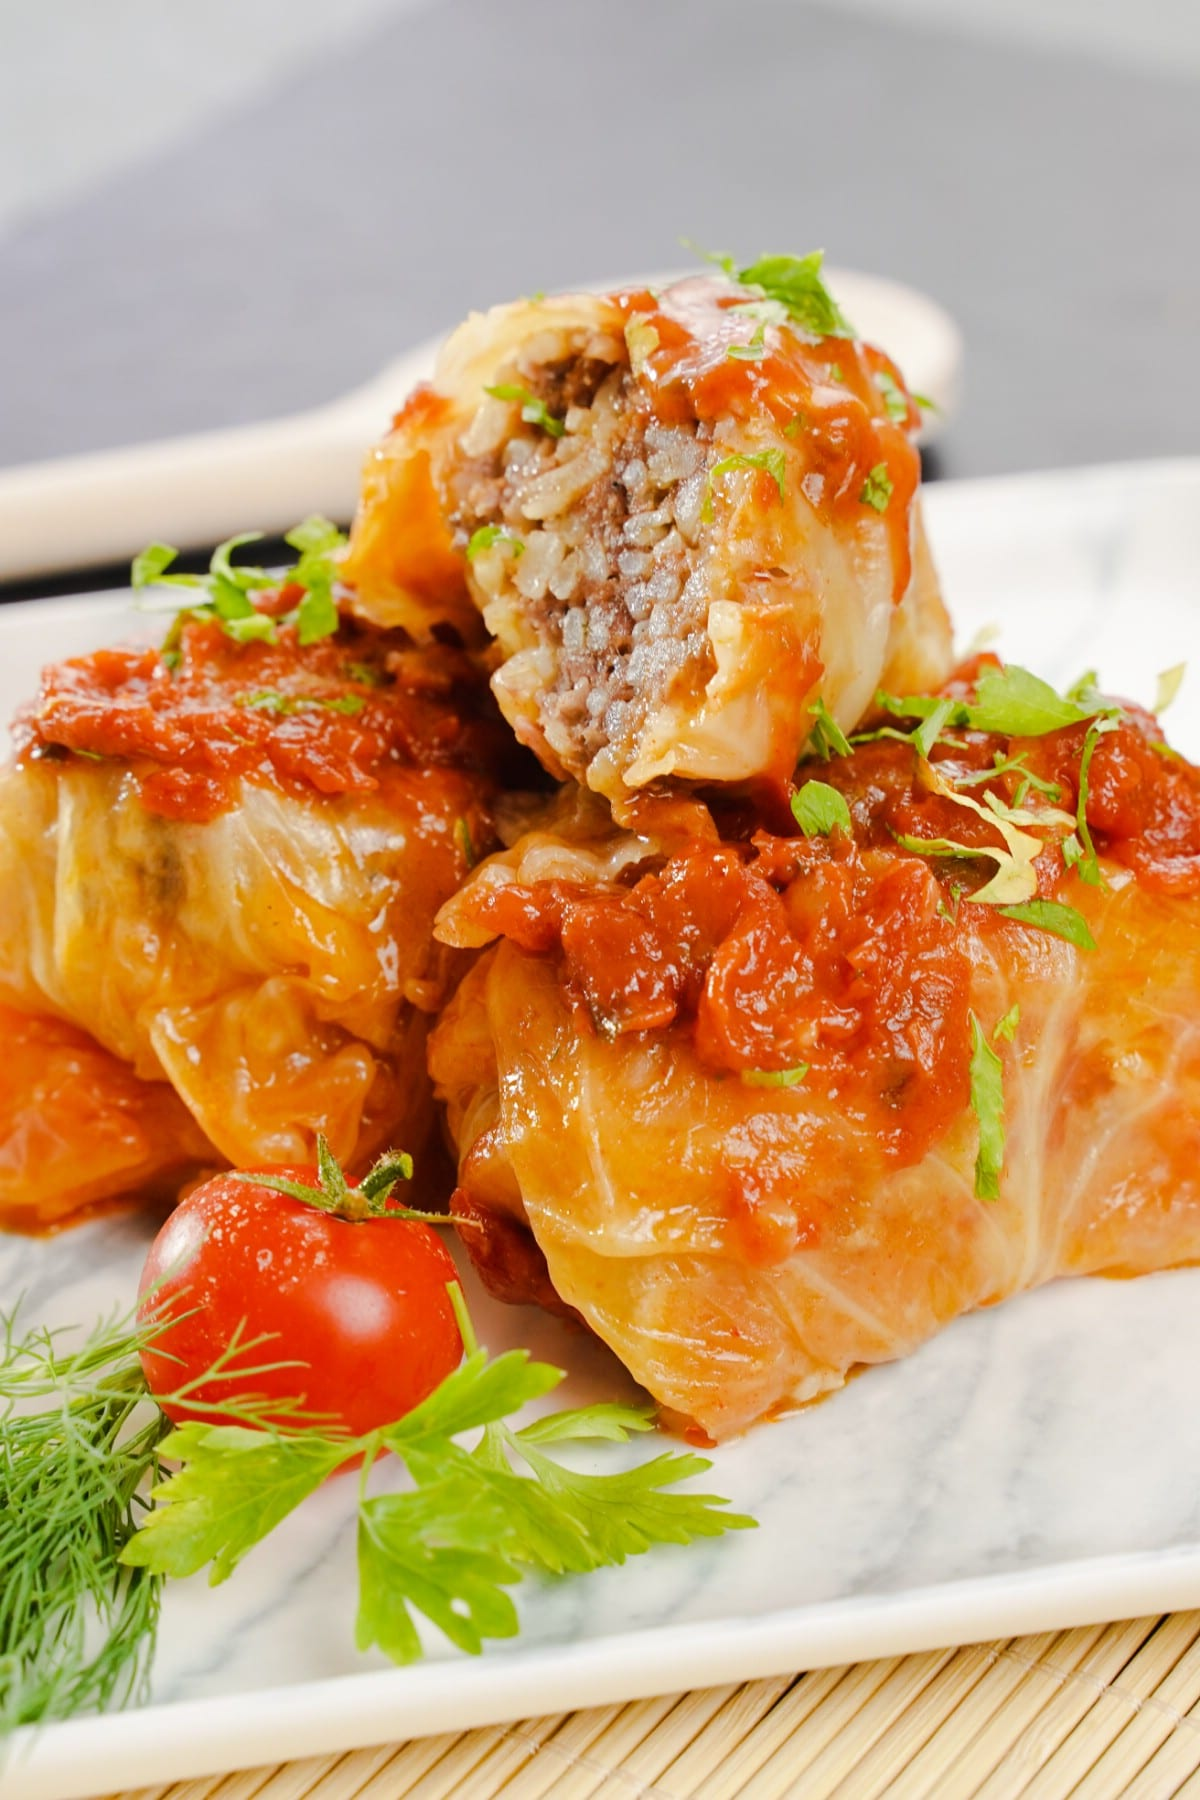 Stack of sarma rolls on white plate with greens and tomato